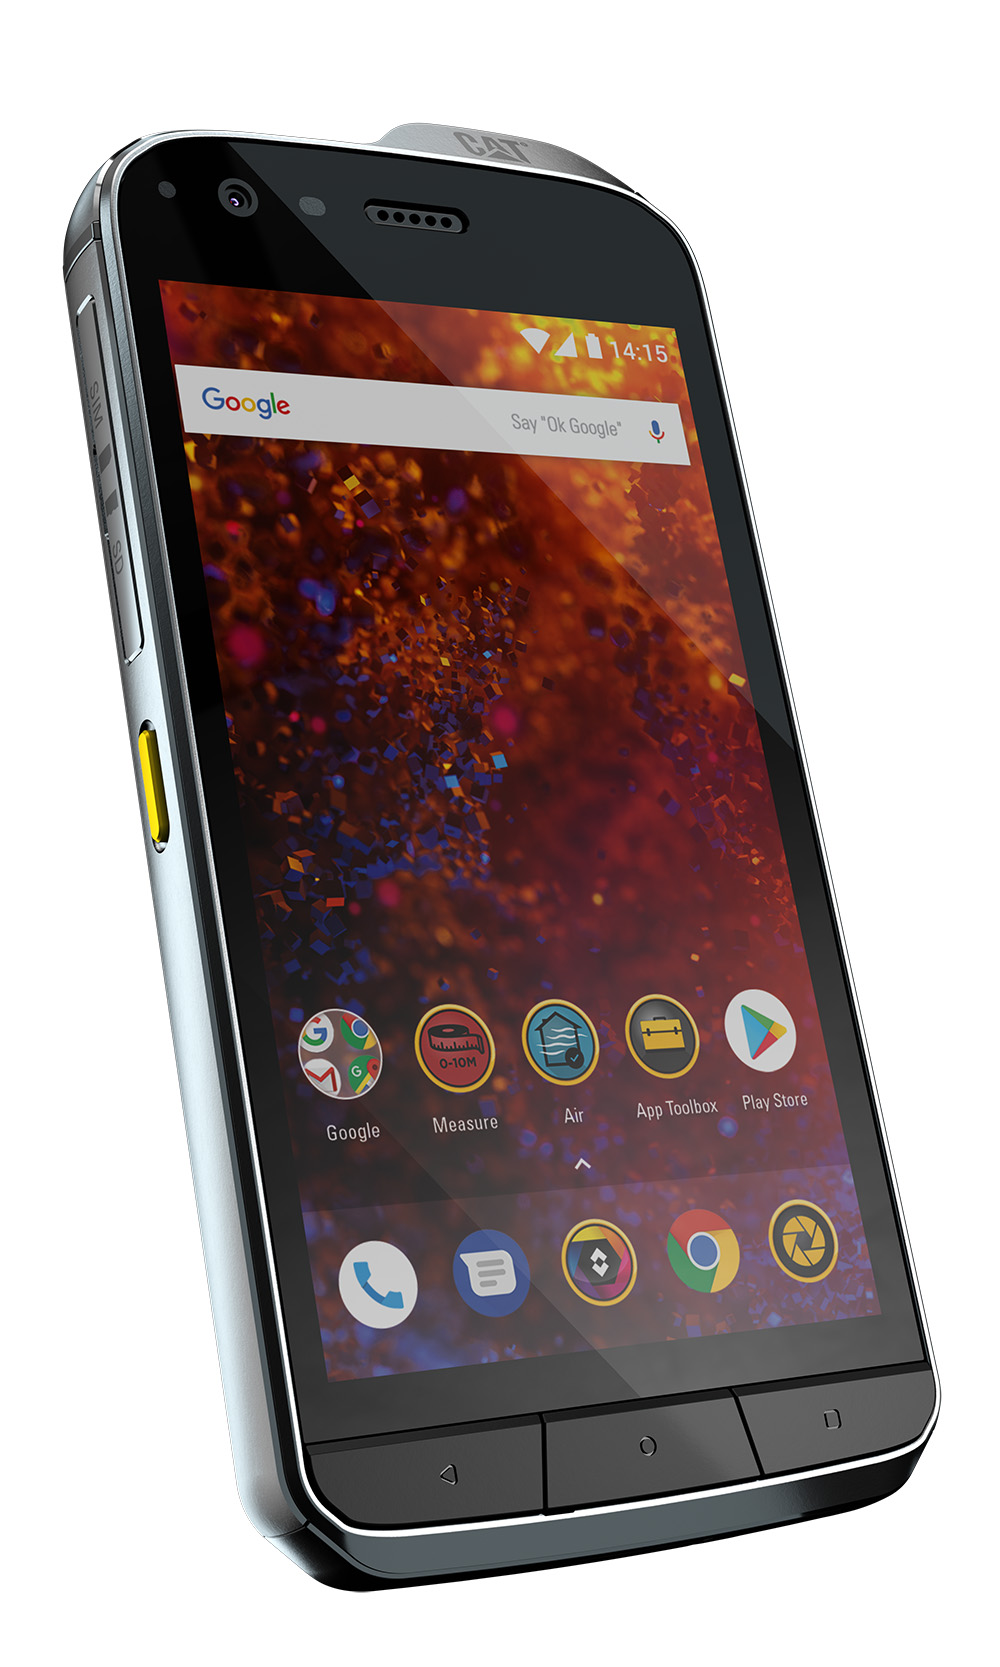 The New Cat S61 Rugged Smartphone Front Angled